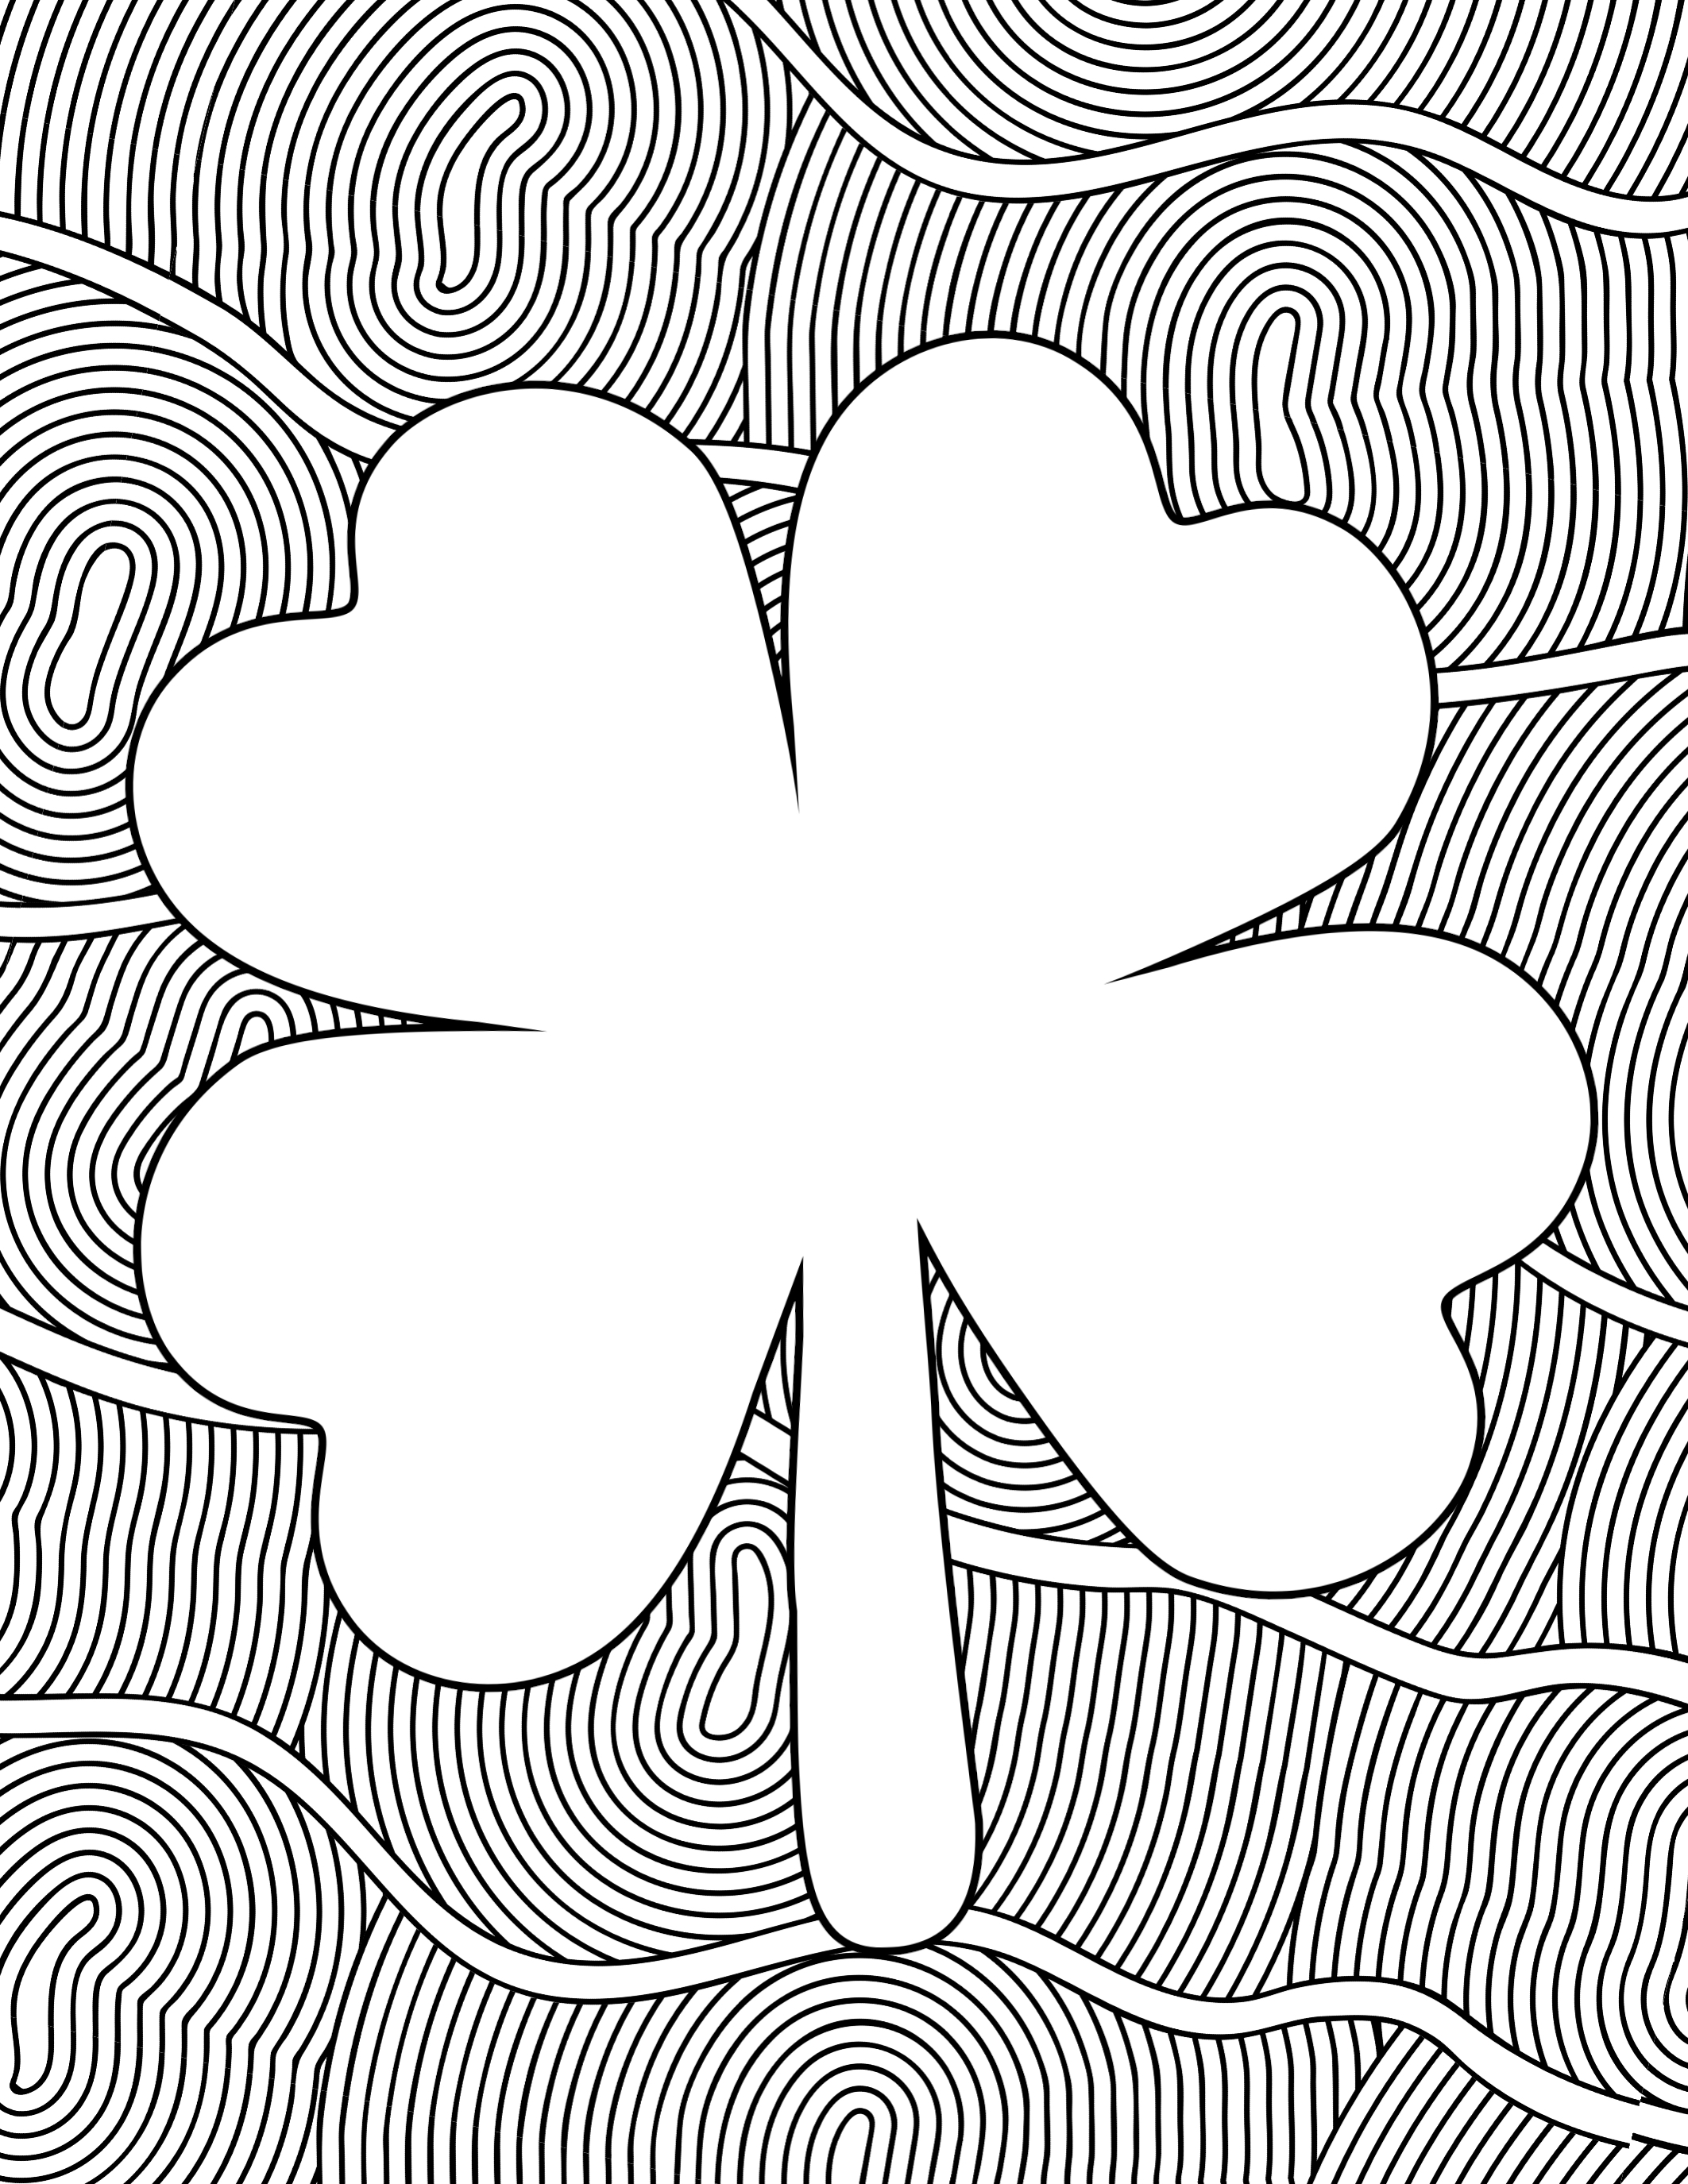 Free Printable St Patrick S Day Coloring Sheets Paper Trail Design